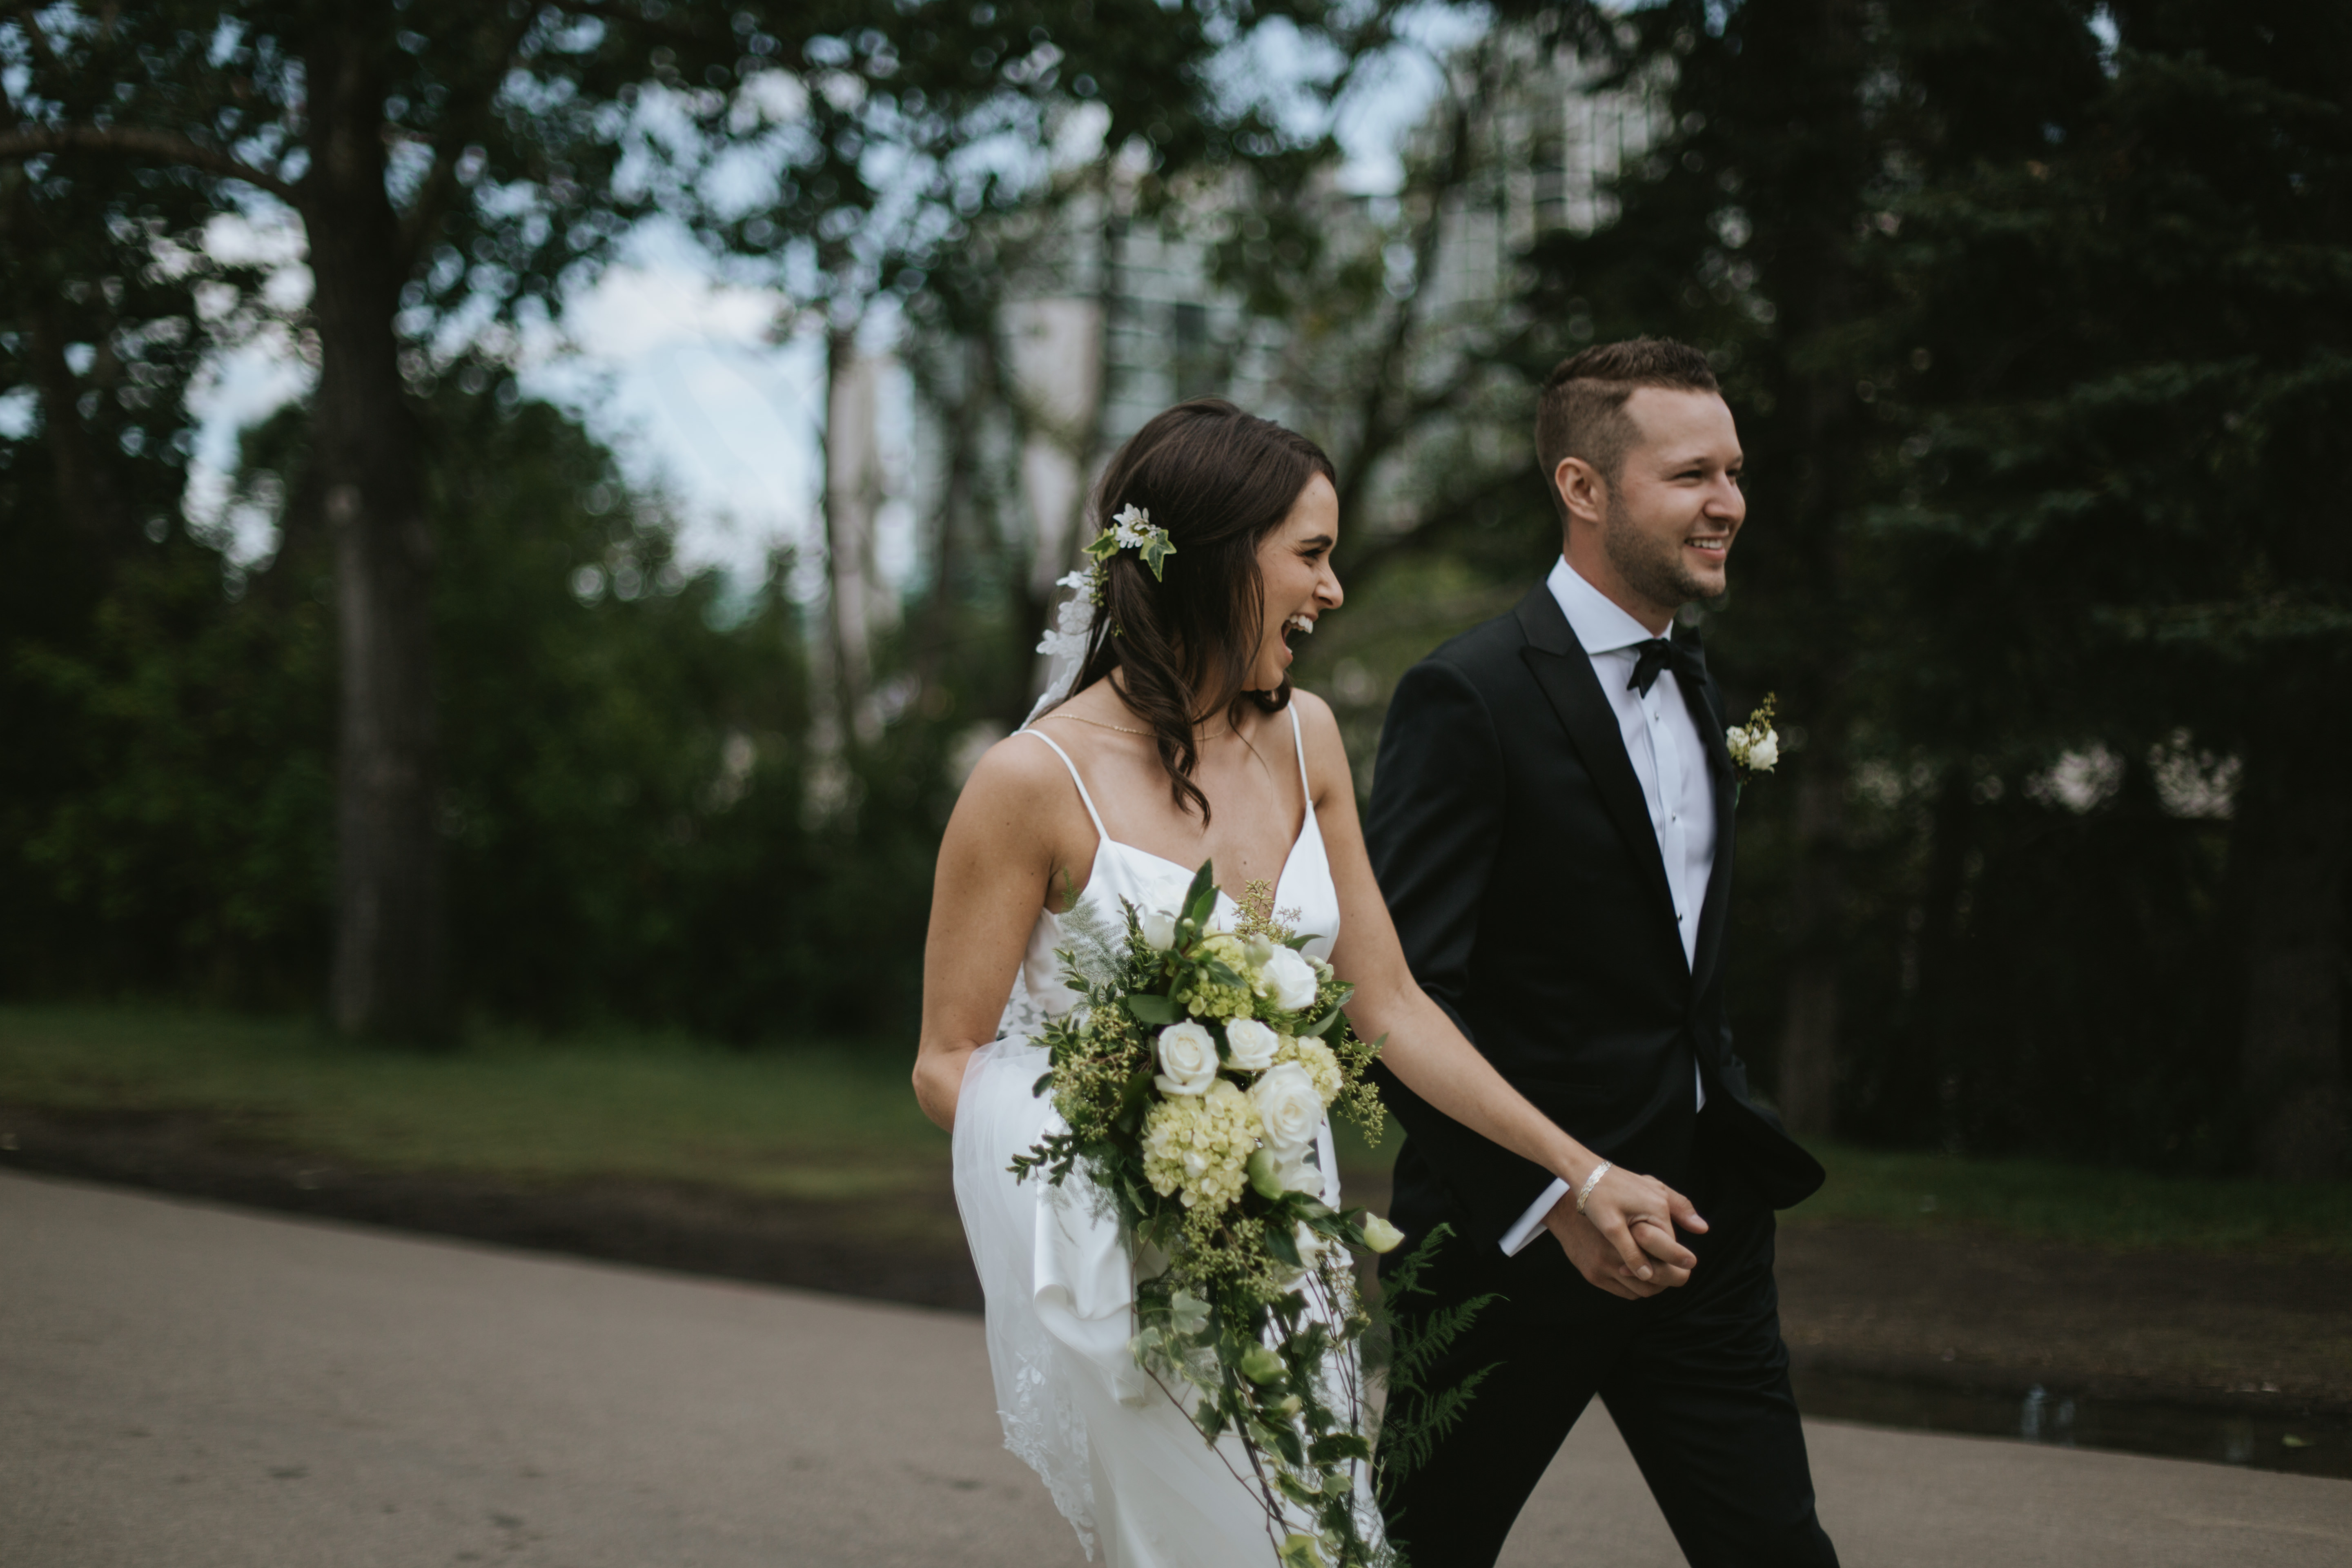 the bride and groom walk and laugh on a path